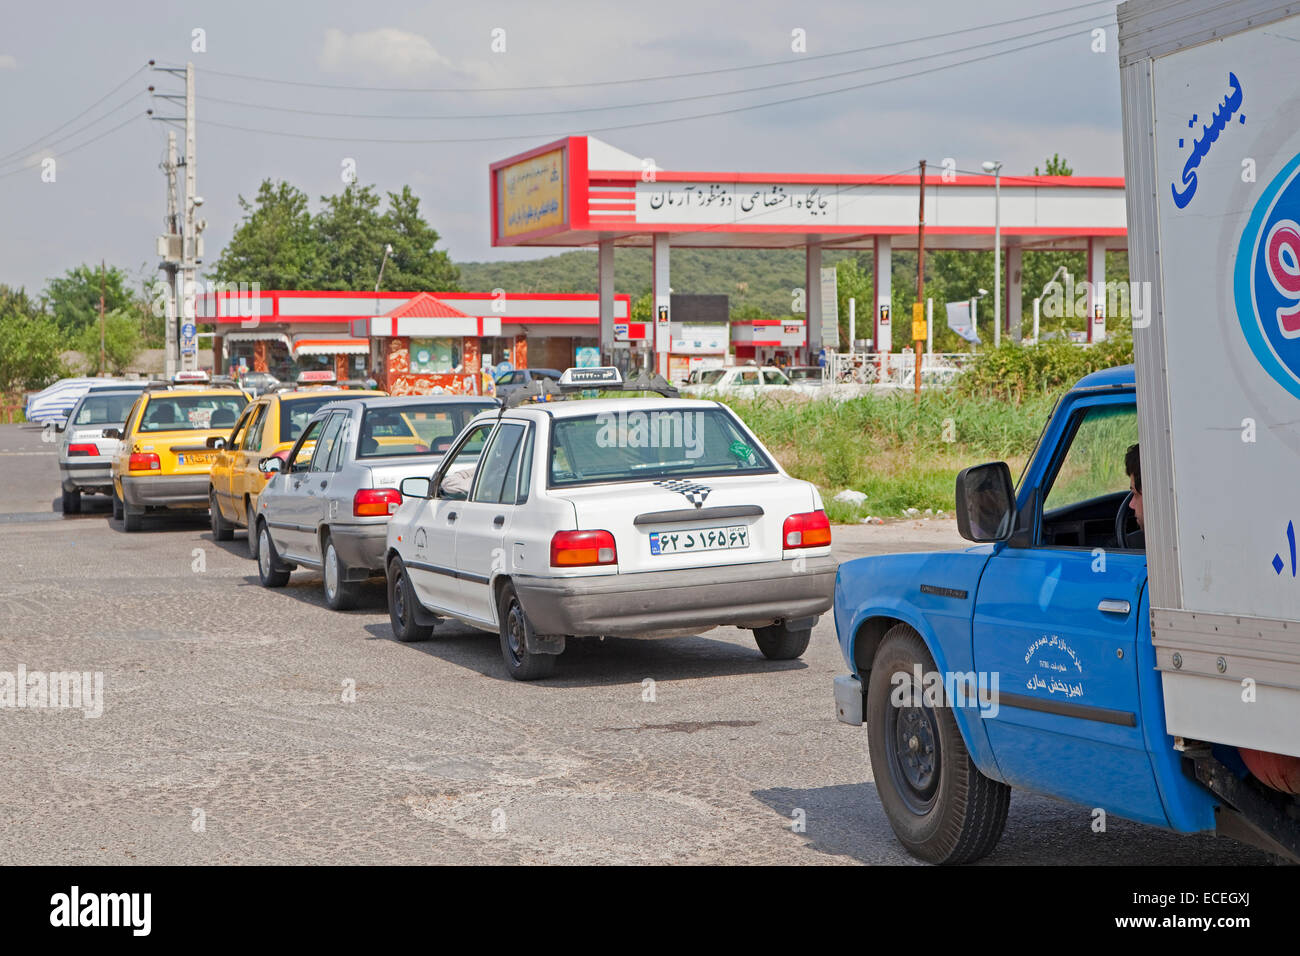 Cars queued up in front of petrol station / service station in Iran - Stock Image